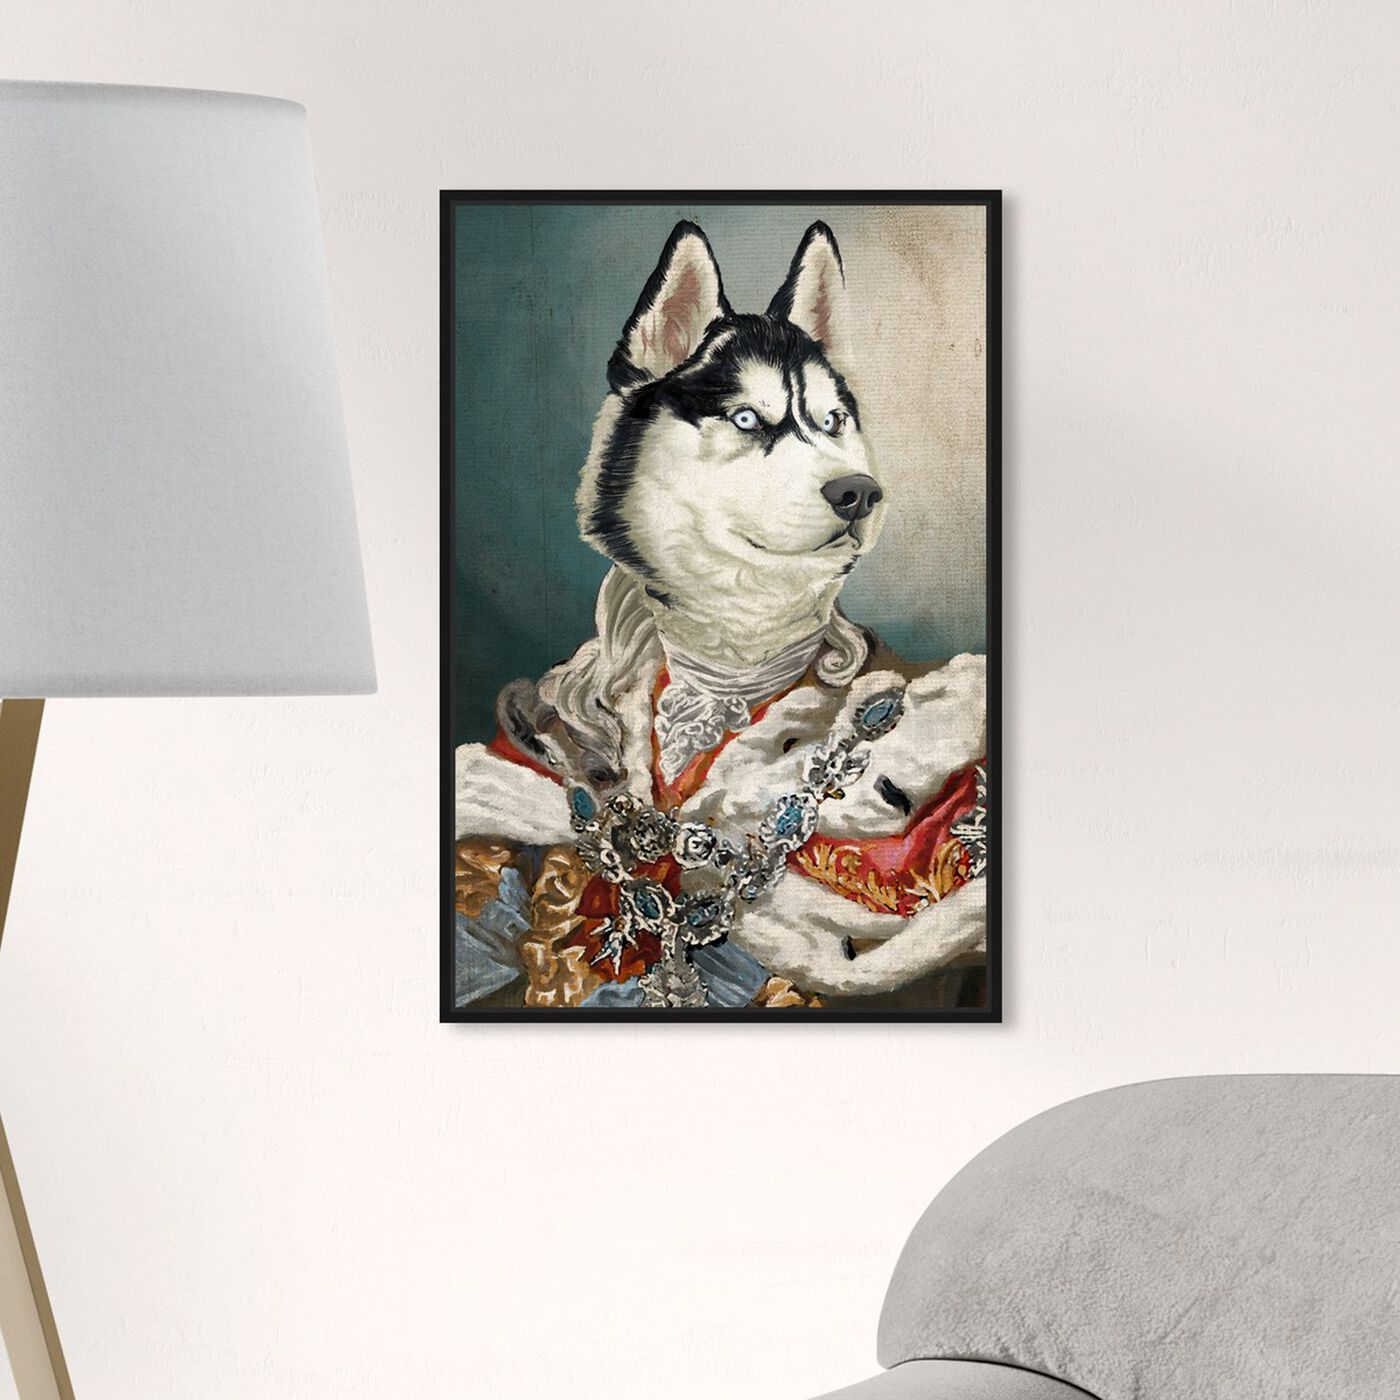 Hanging view of Royal Husky featuring animals and dogs and puppies art.